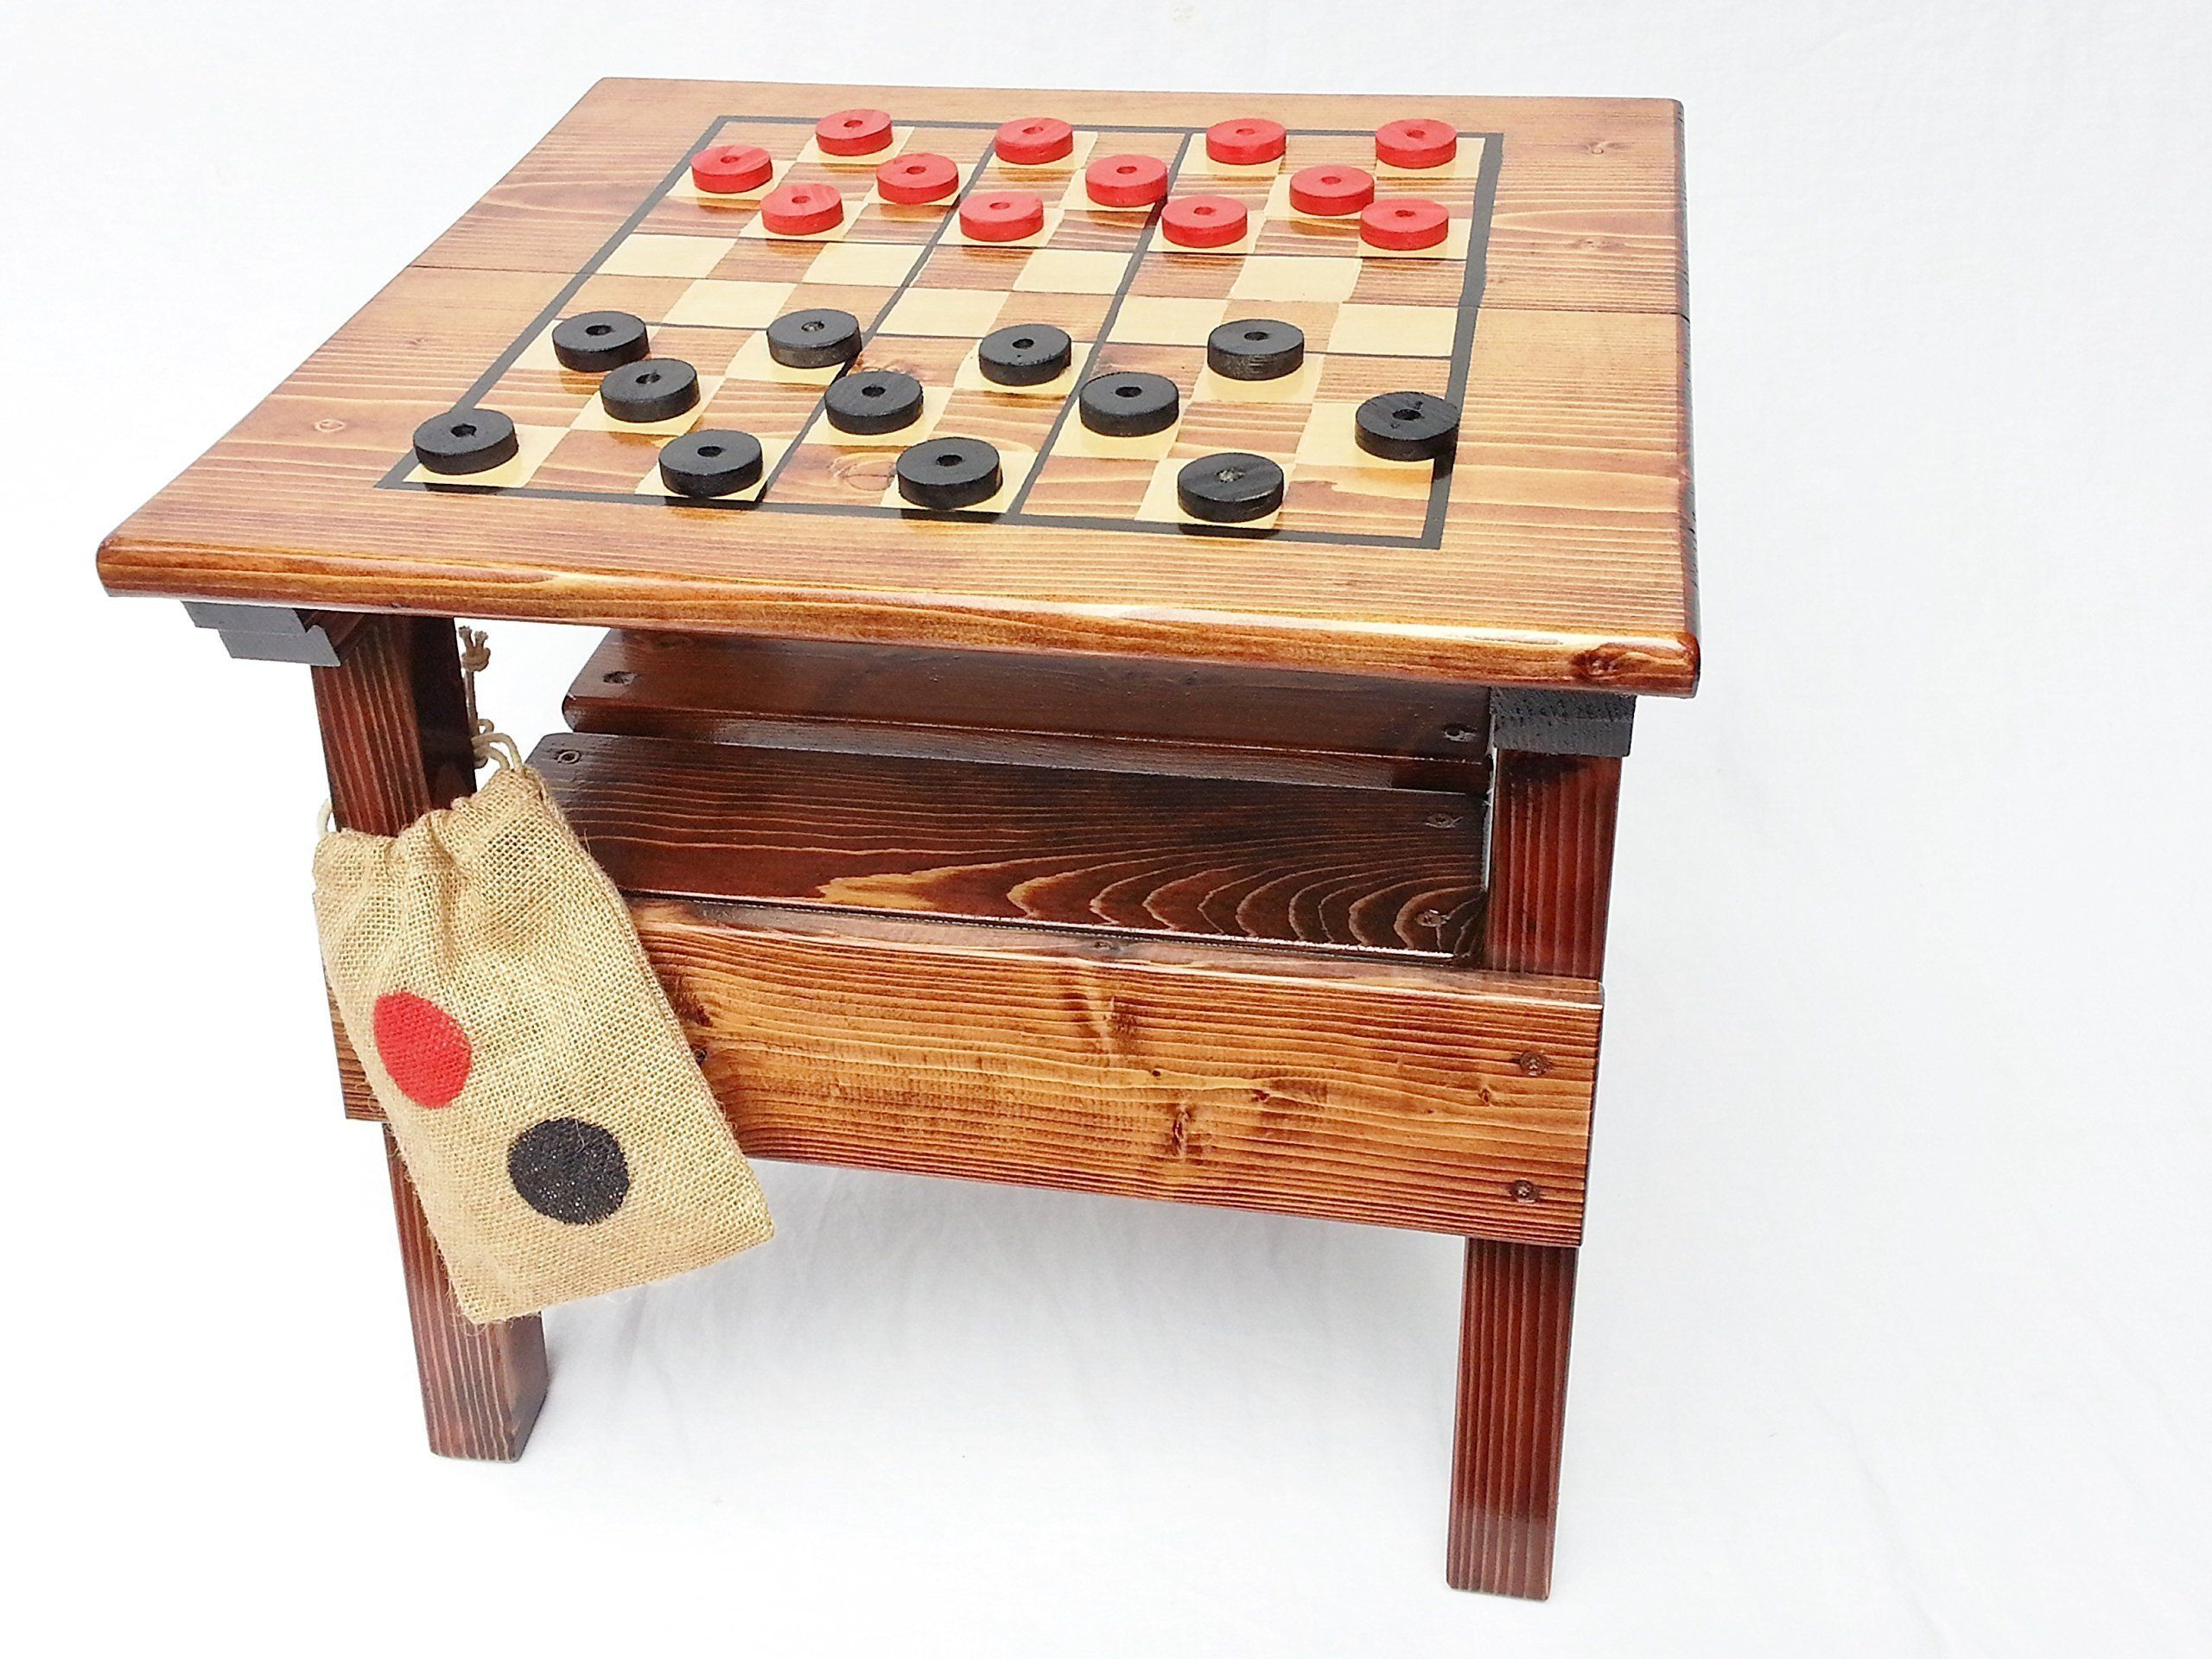 Kids Checkers Game And Activity Table Outdoor Wooden Game. This Happy  Checkers Game Table Is